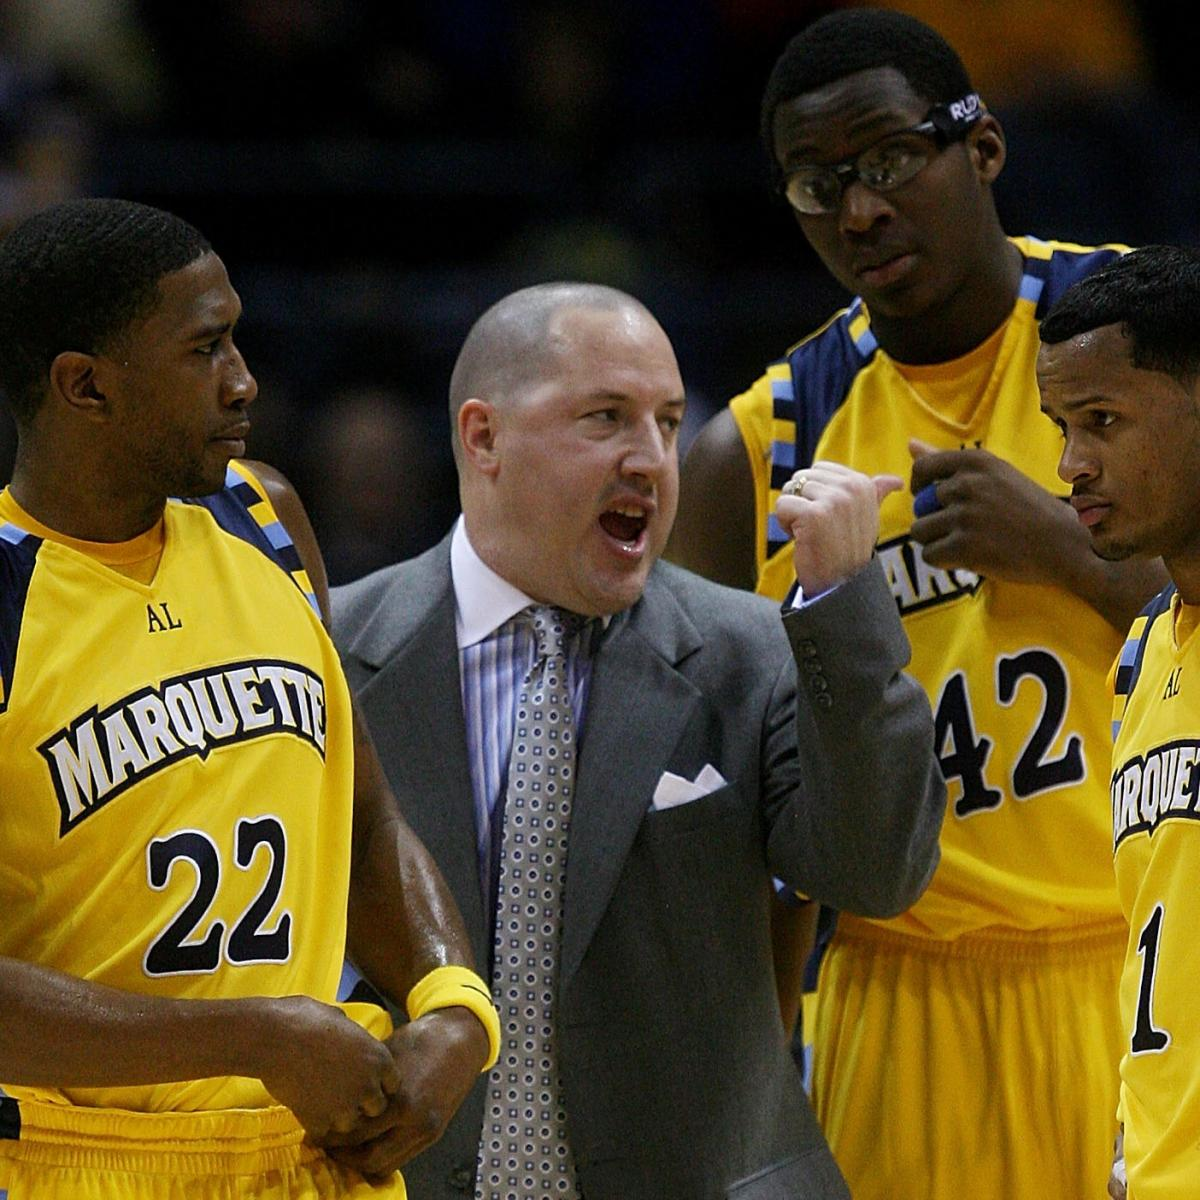 Marquette Basketball: Ranking the Best Golden Eagles from